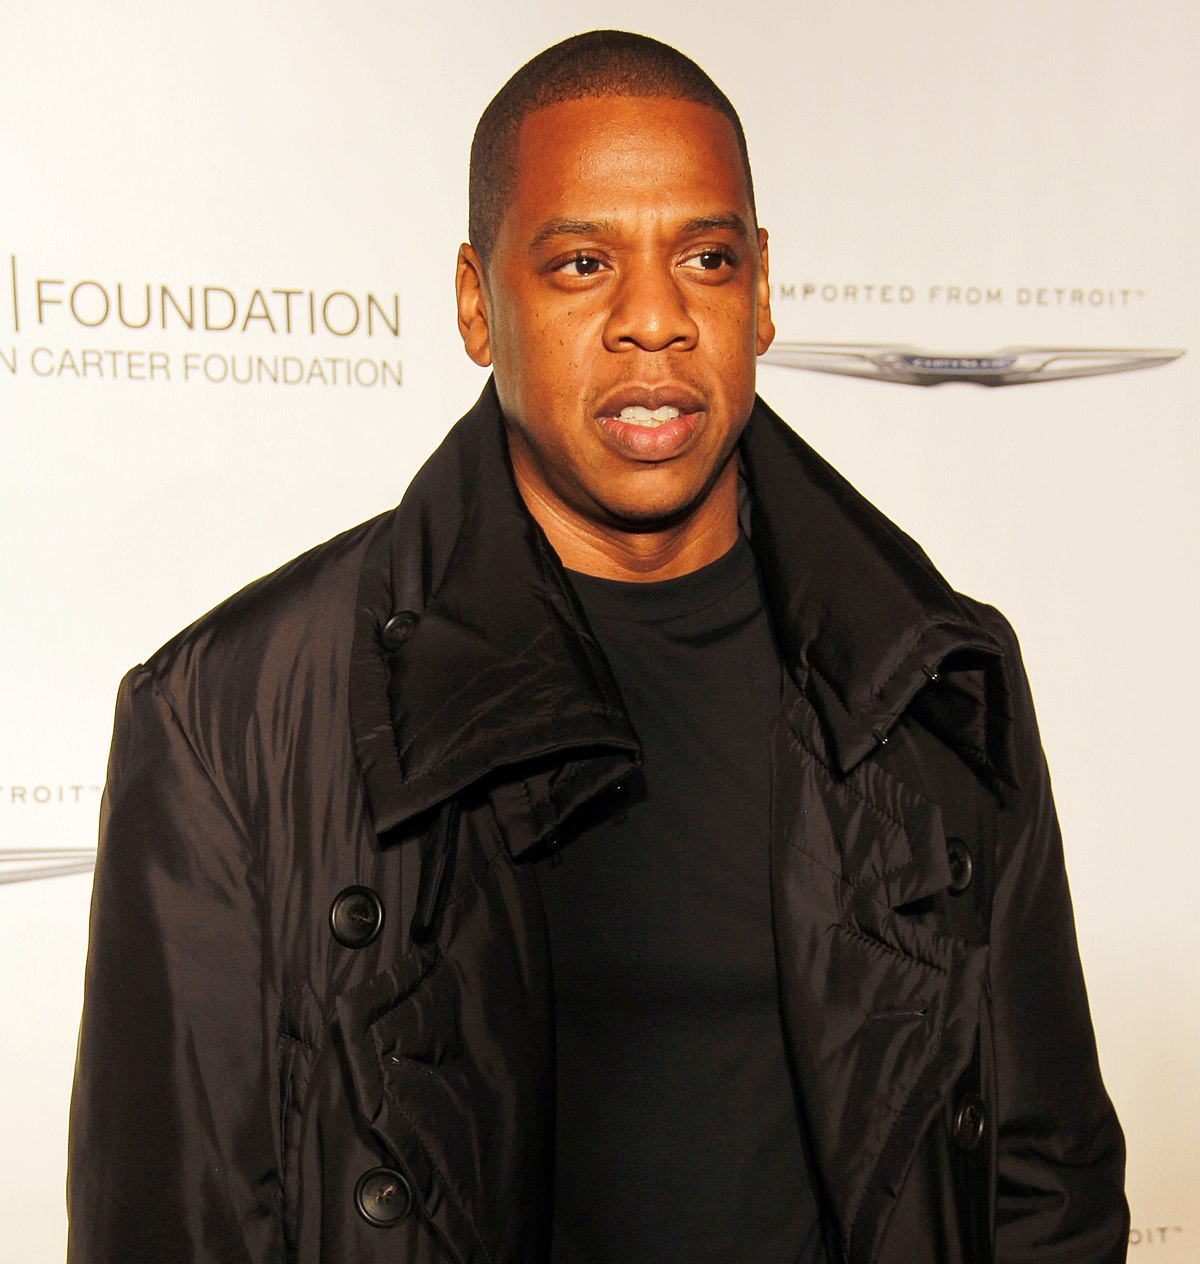 Jay z simple english wikipedia the free encyclopedia malvernweather Gallery